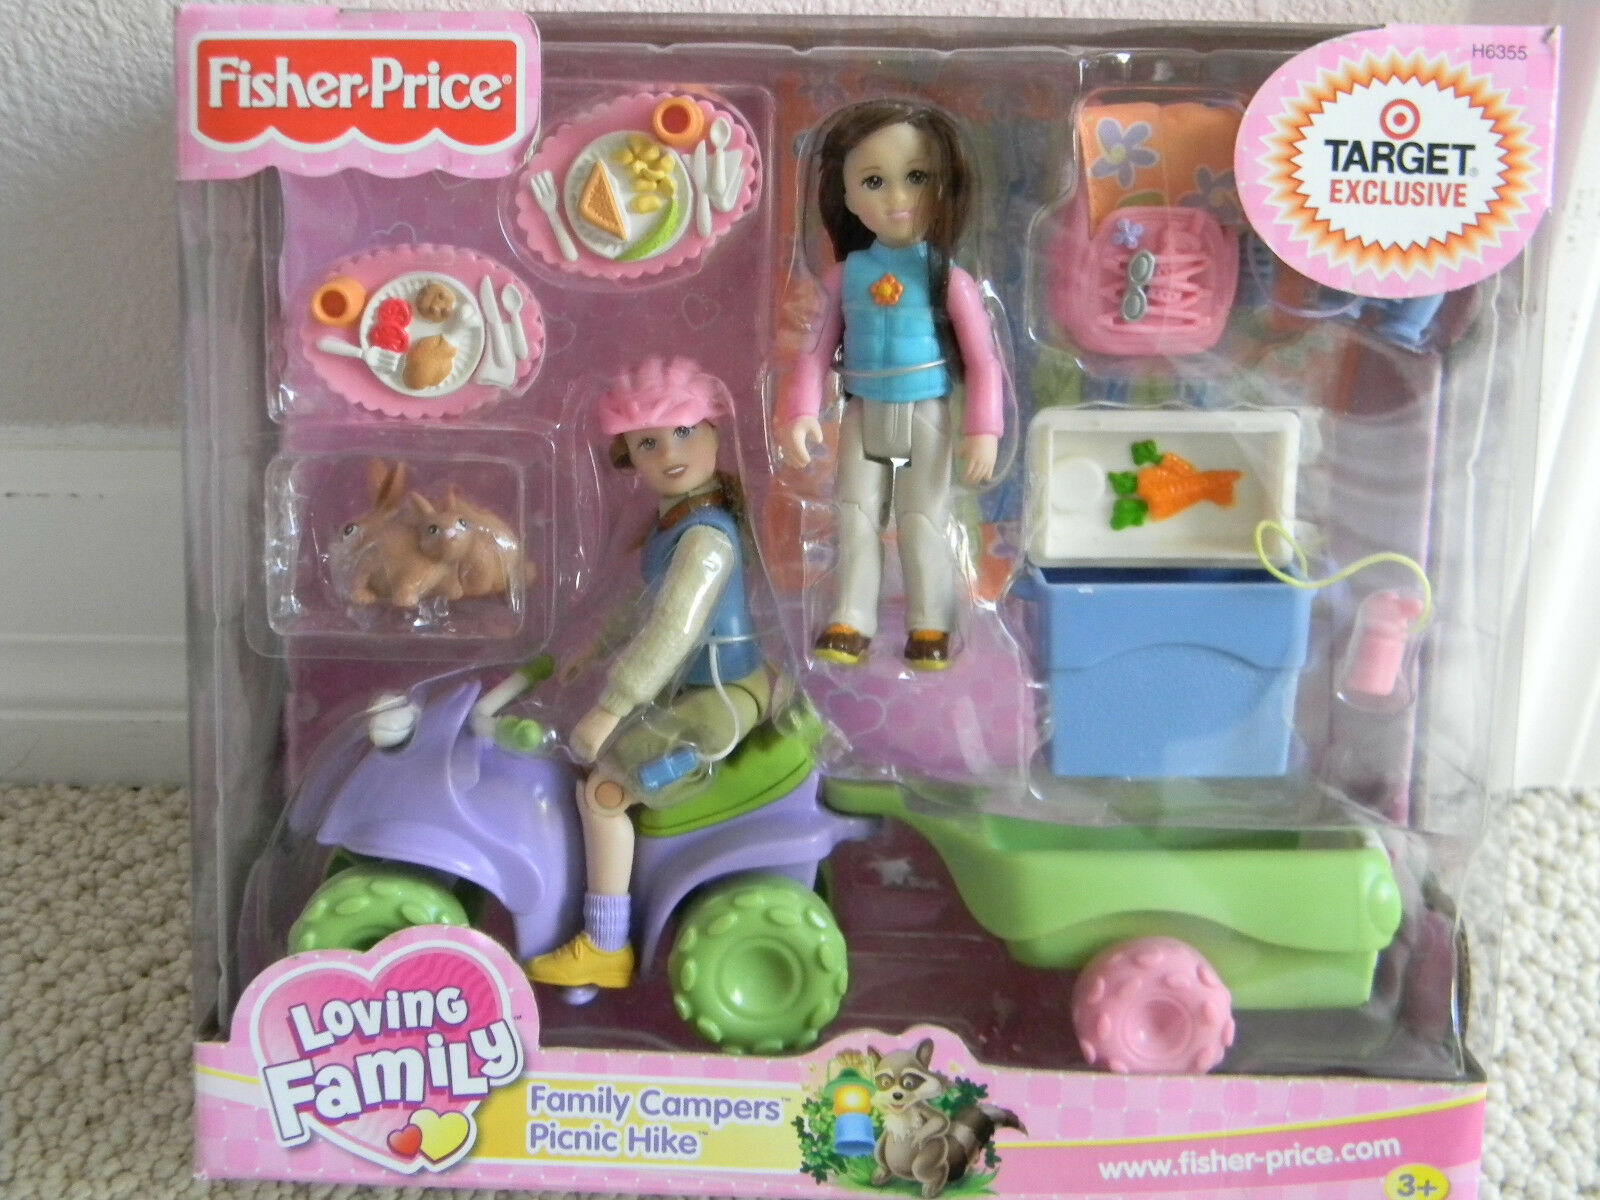 2004 Fisher Price Loving Family dockhus Family Campers Picnic Hike RARE